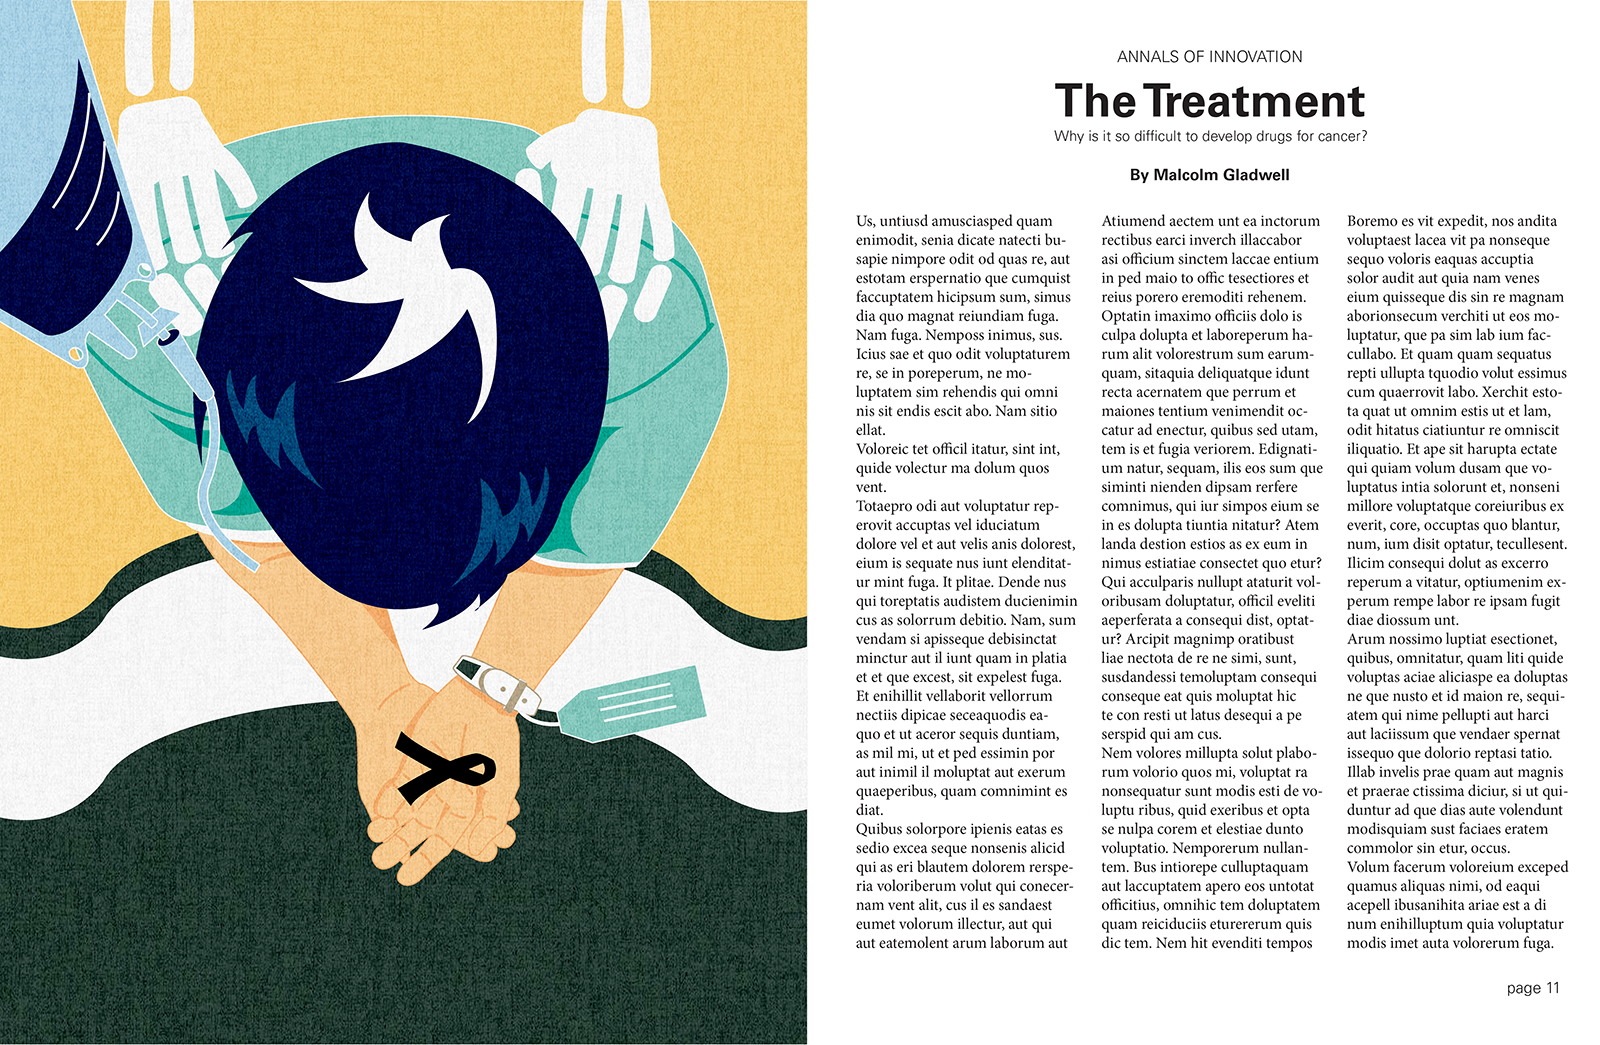 editorial illustration and layout for an assigned article on cancer treatment